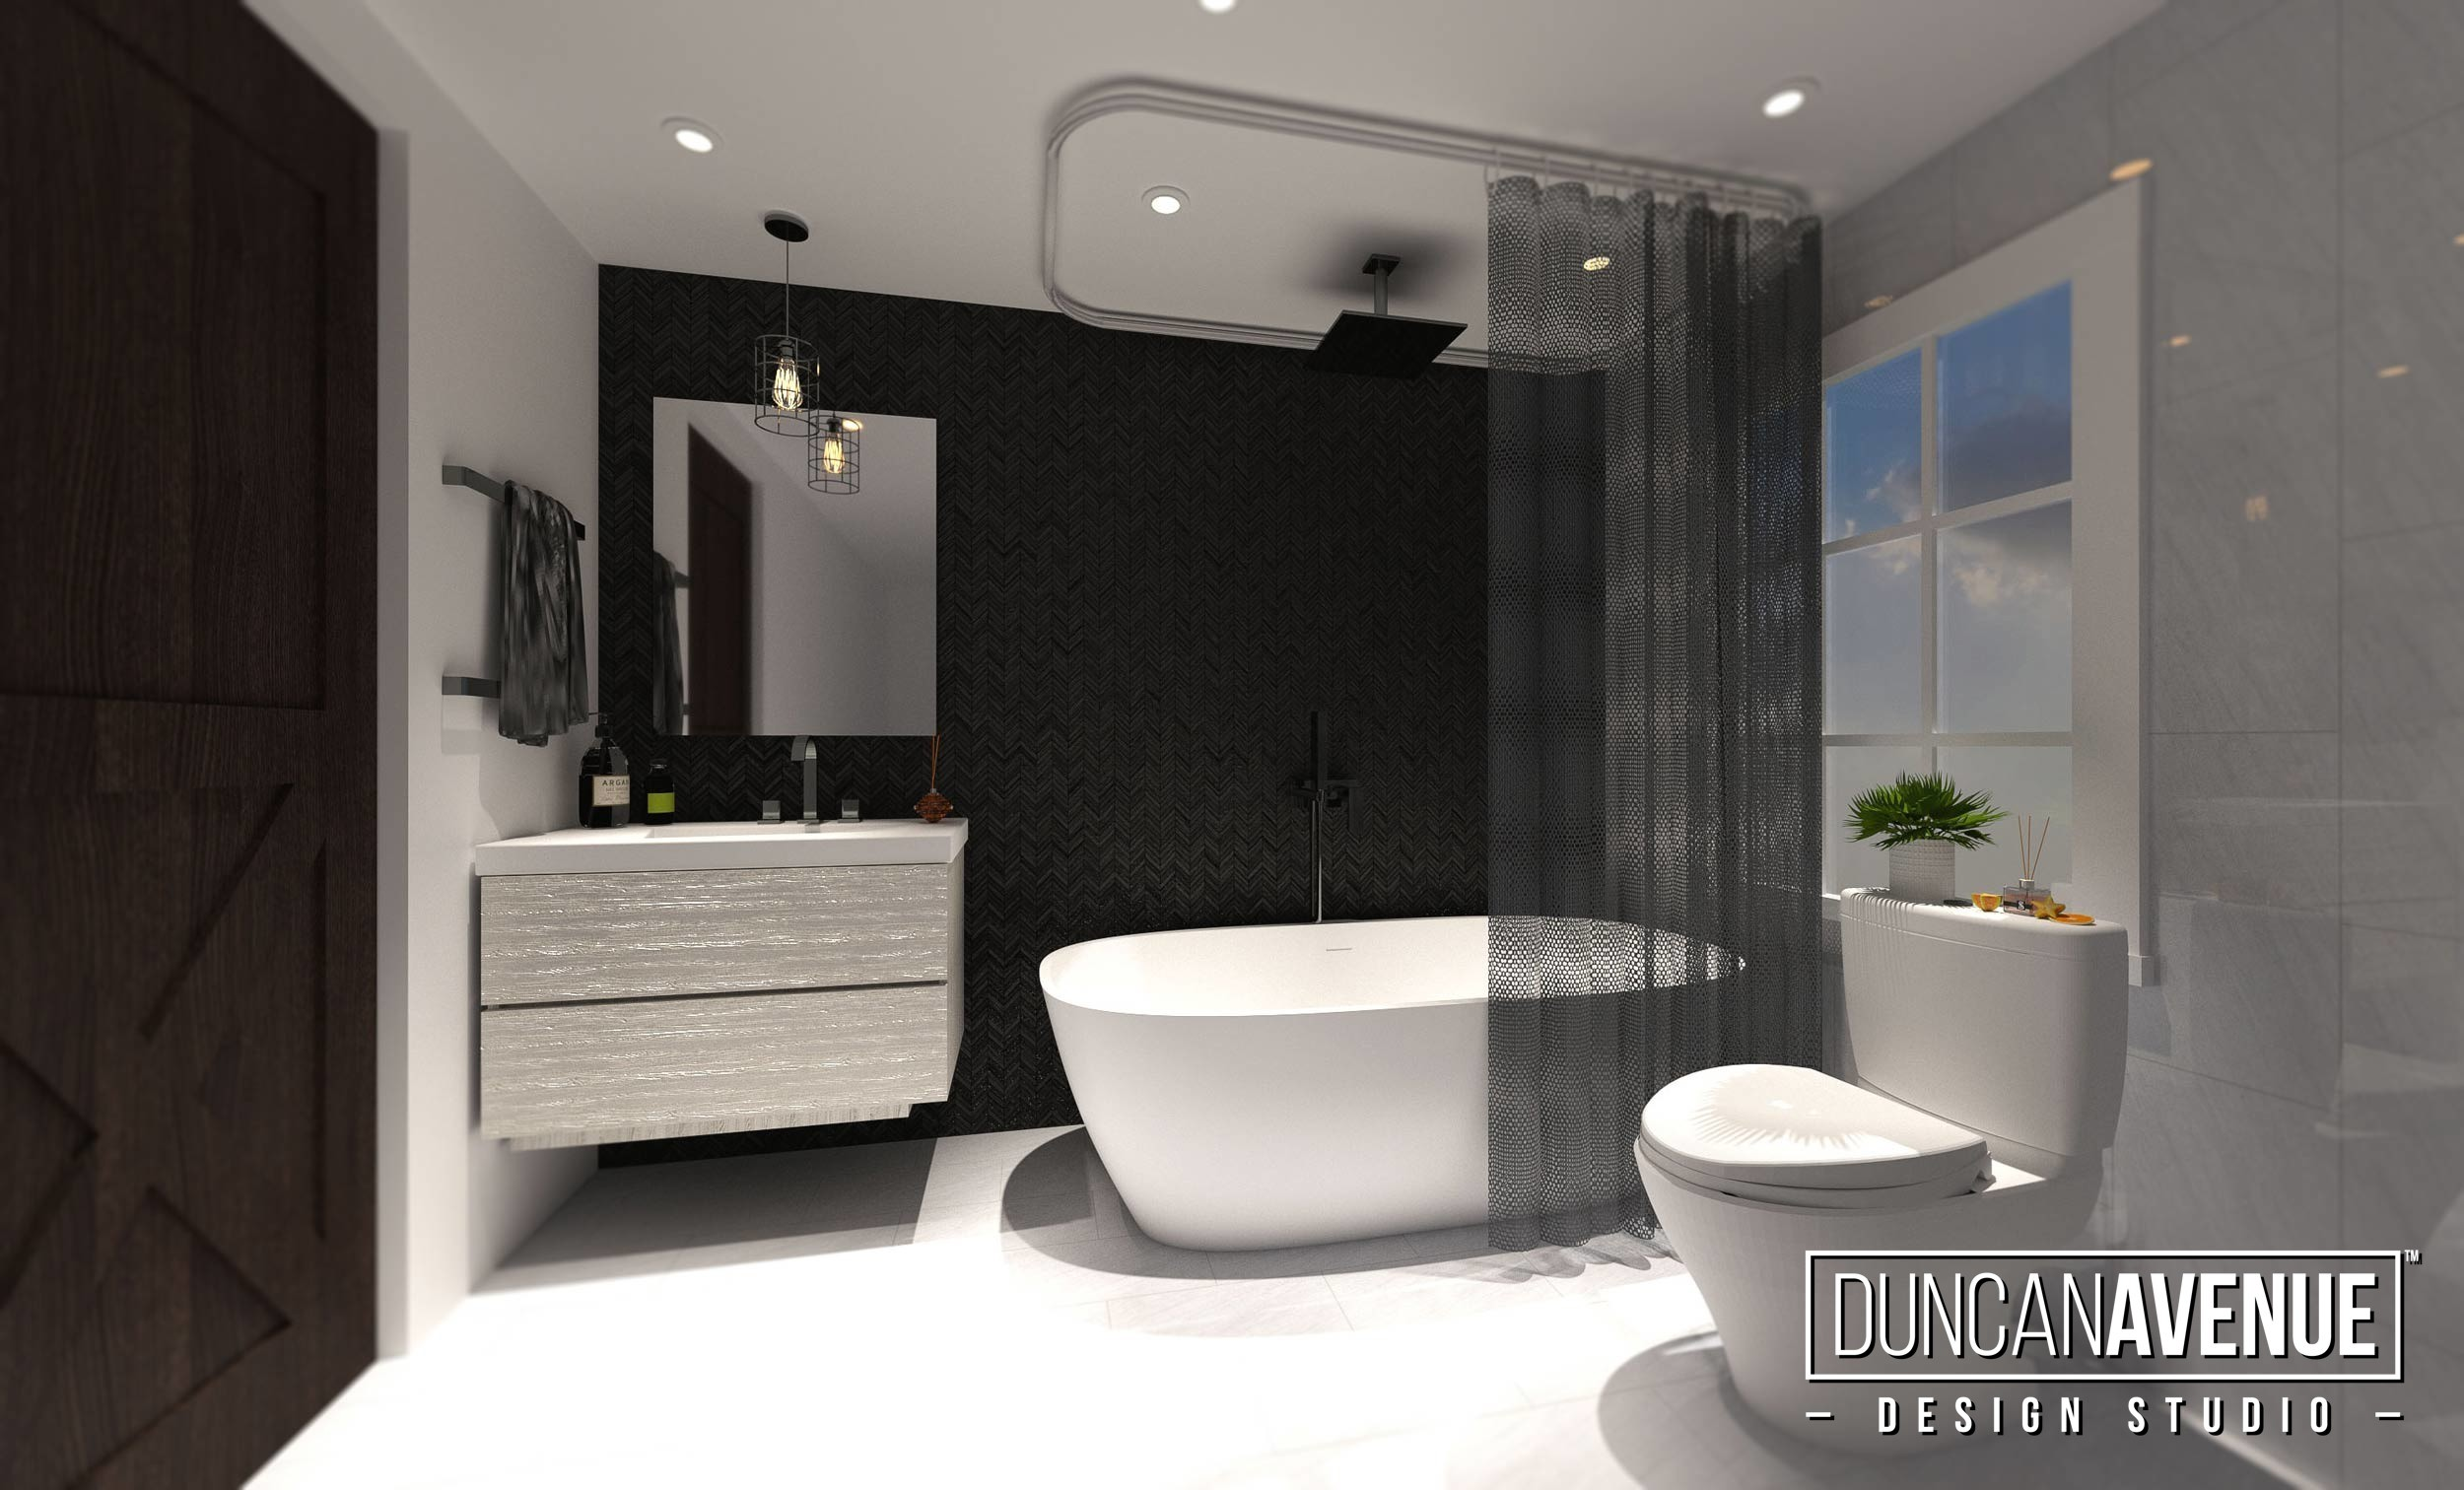 Duncan Avenue Design Studio - Sustainable Interior Design in the Hudson Valley and Beyond